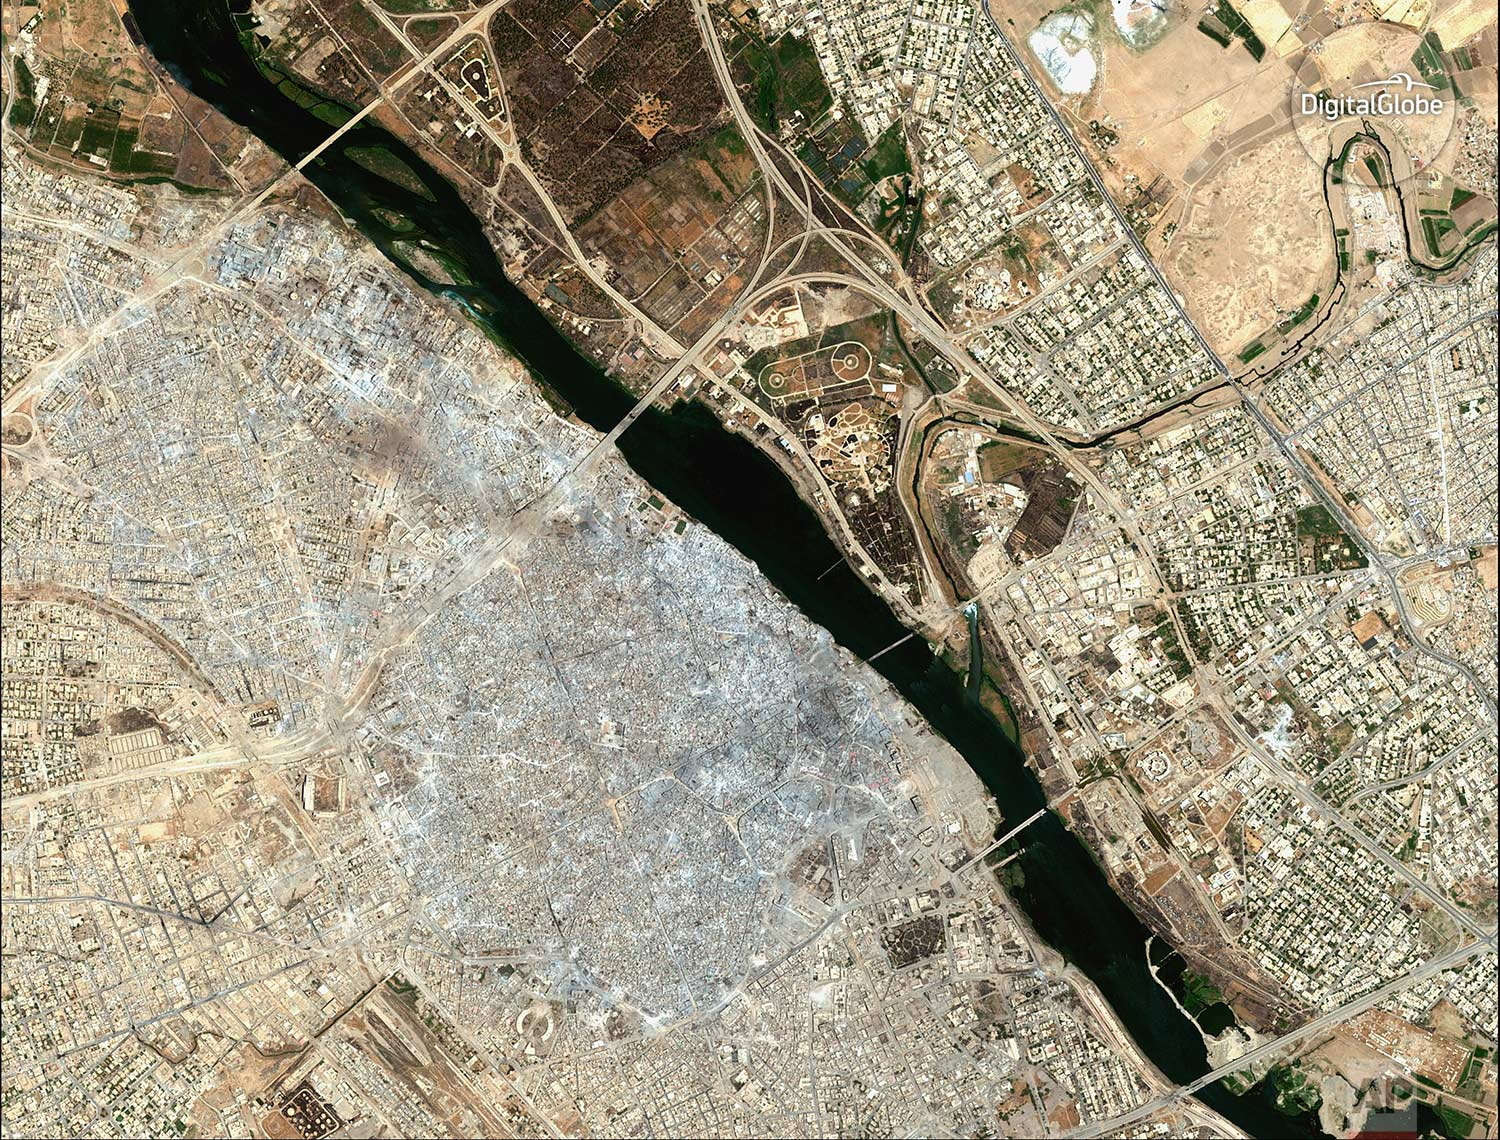 This satellite image released by DigitalGlobe shows the Old City of Mosul, Iraq on July 8, 2017 after a punishing nine month battle to oust Islamic State militants.(DigitalGlobe via AP)